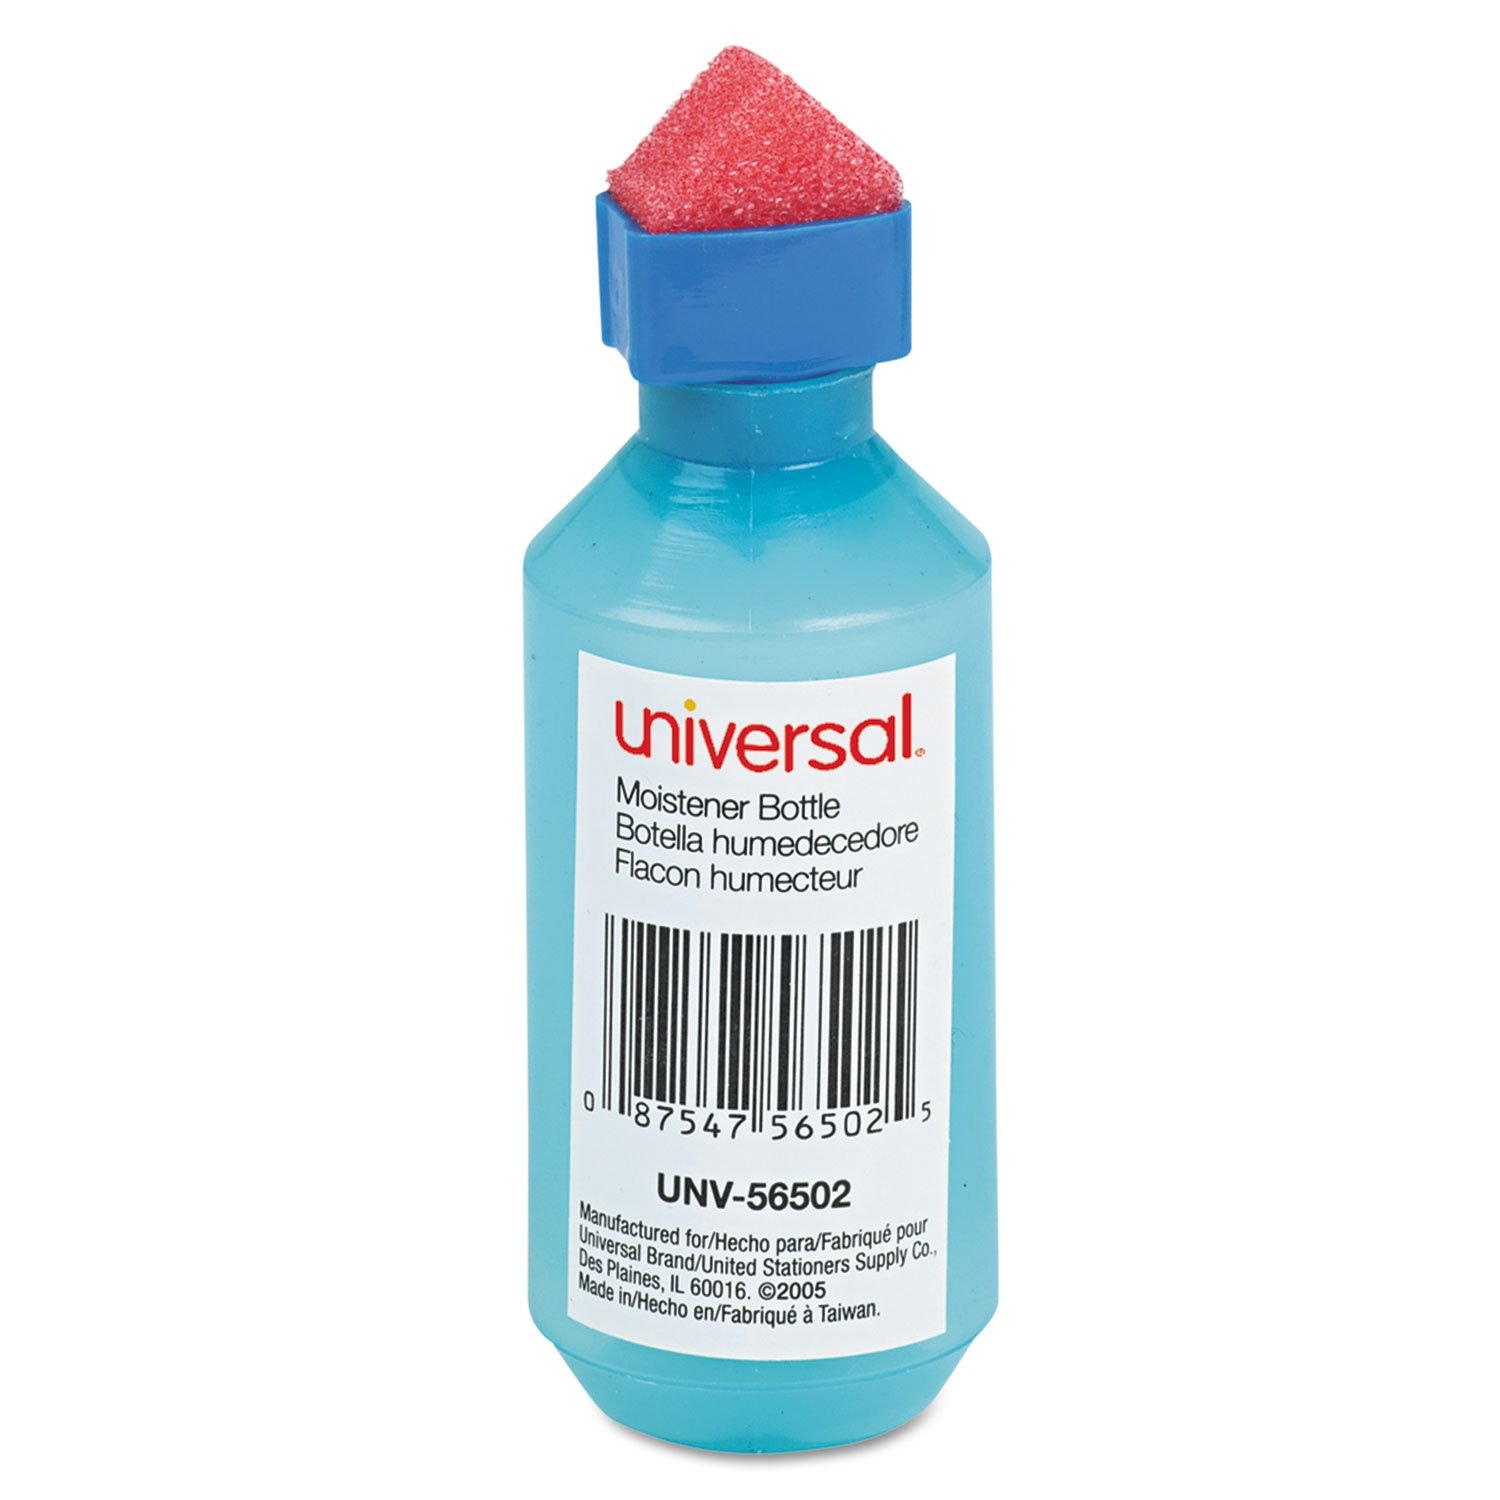 Universal 56502 Squeeze Bottle Moistener, 2 oz, Blue UNIVERSAL OFFICE PRODUCTS UNV56502-JA